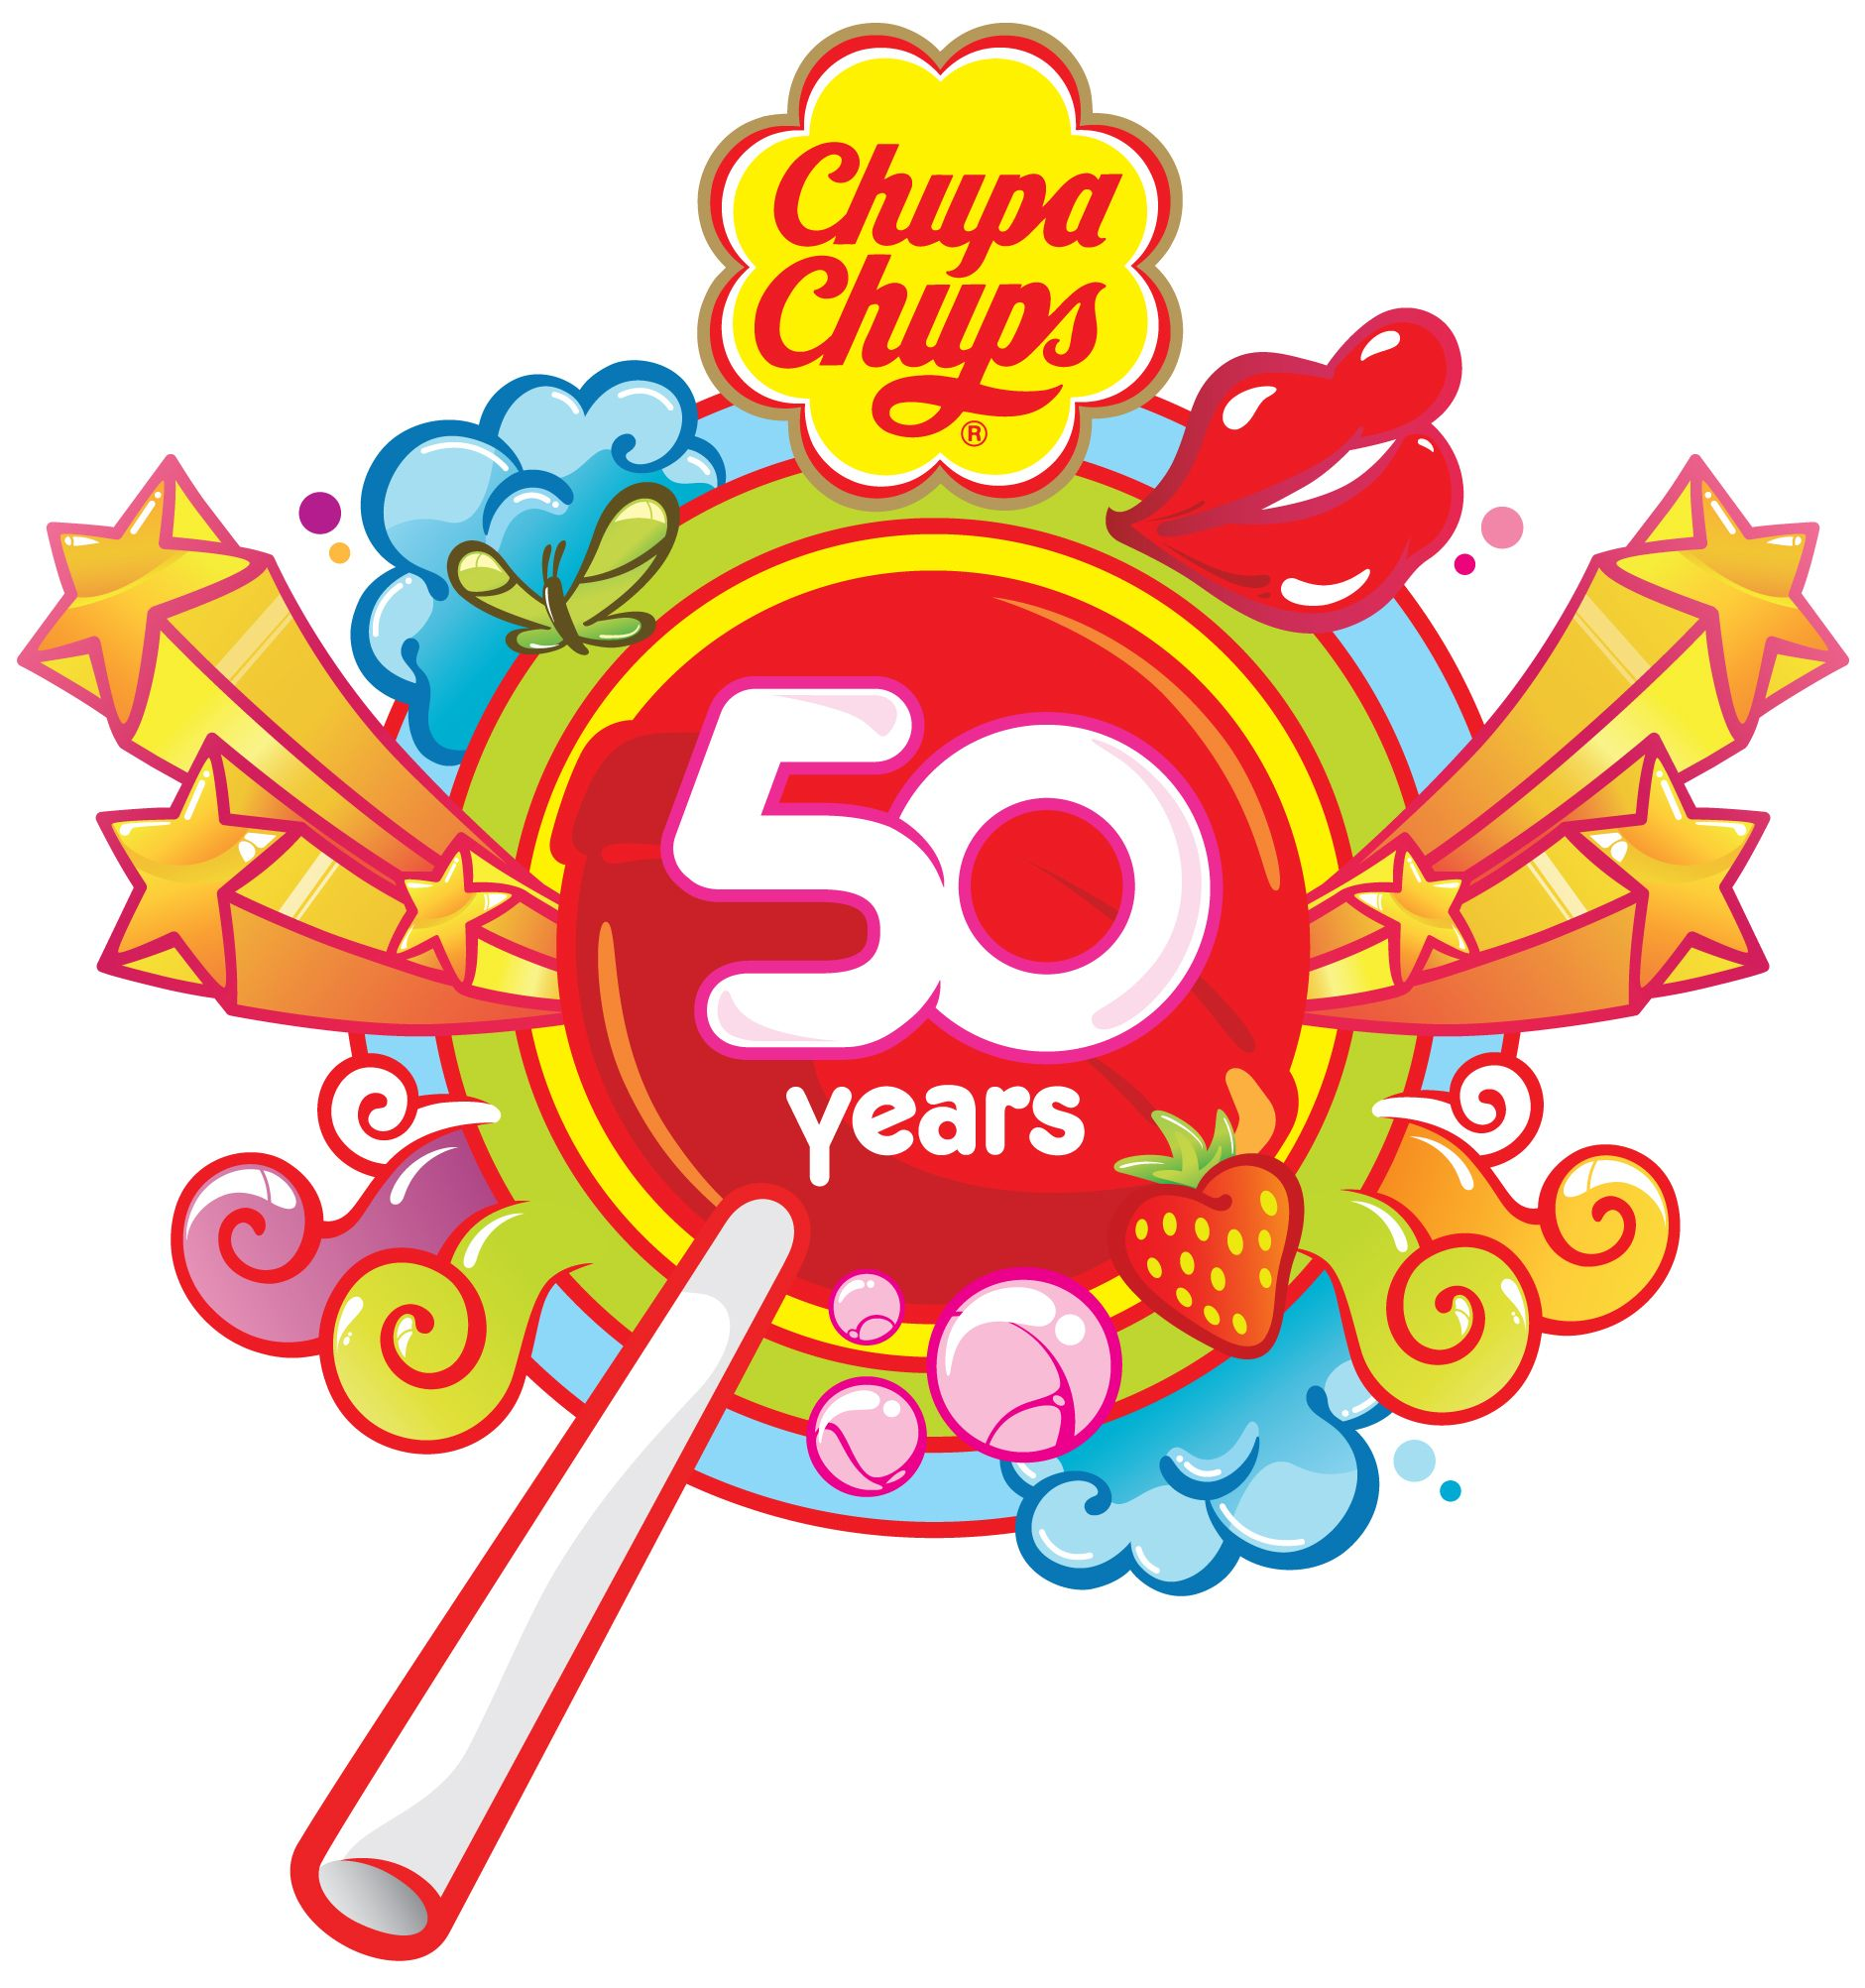 During the last 50 years Chupa Chups has been moving the